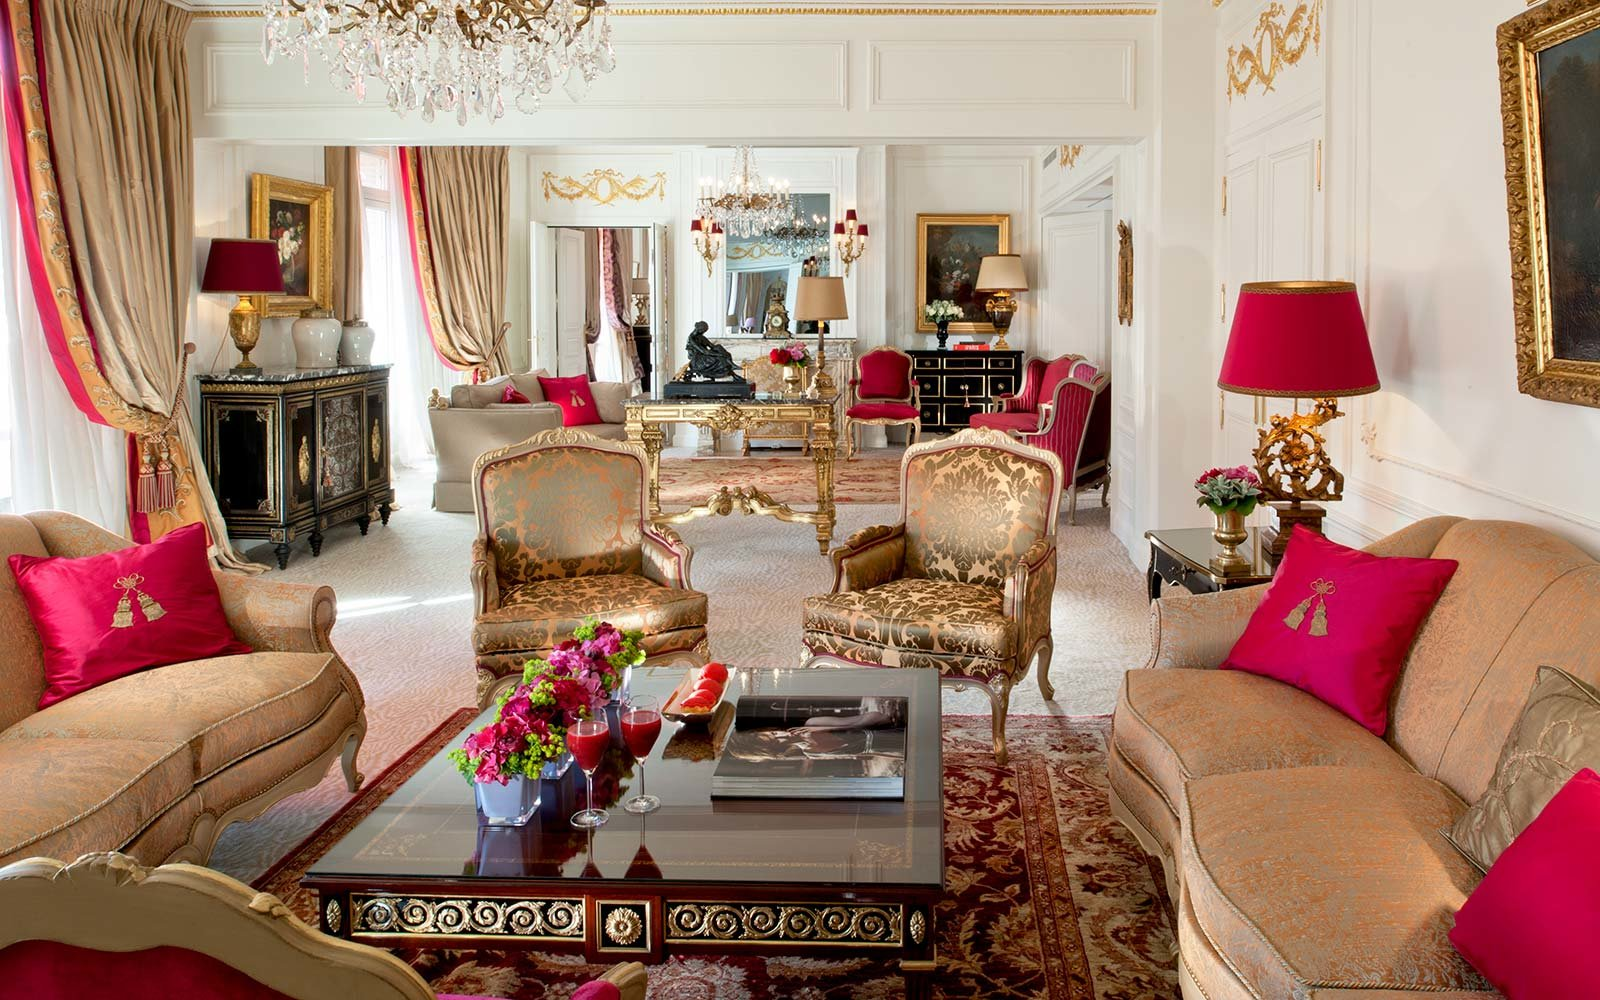 The Royal Suite at Hôtel Plaza Athénée, Paris, France